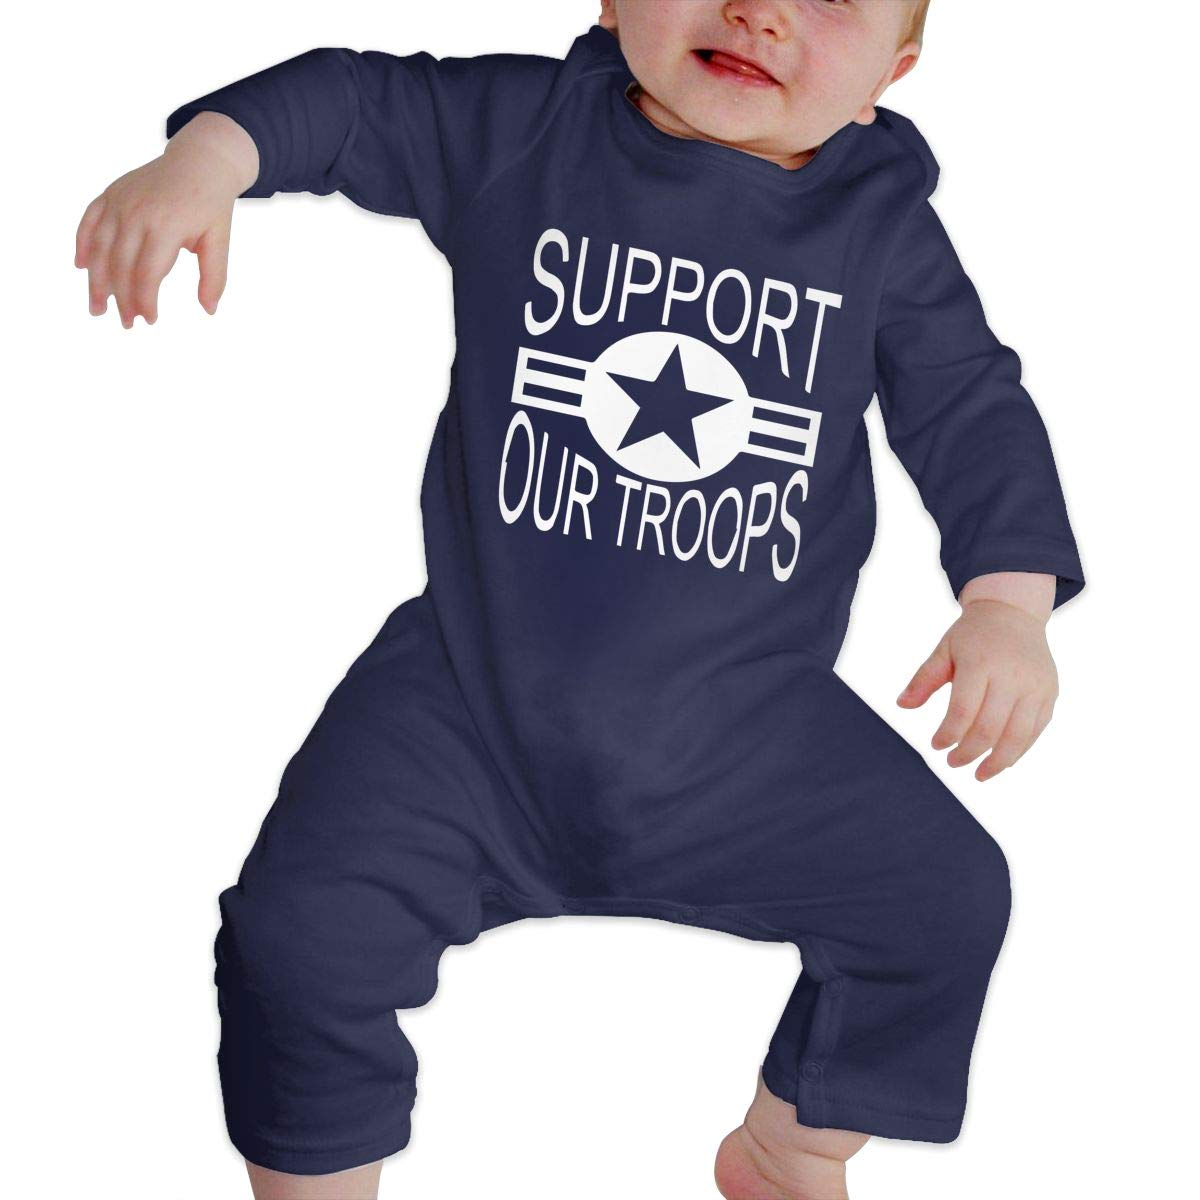 Suit 6-24 Months Newborn Round Collar Support Our Troops 2 Long Sleeve Romper Jumpsuit 100/% Cotton